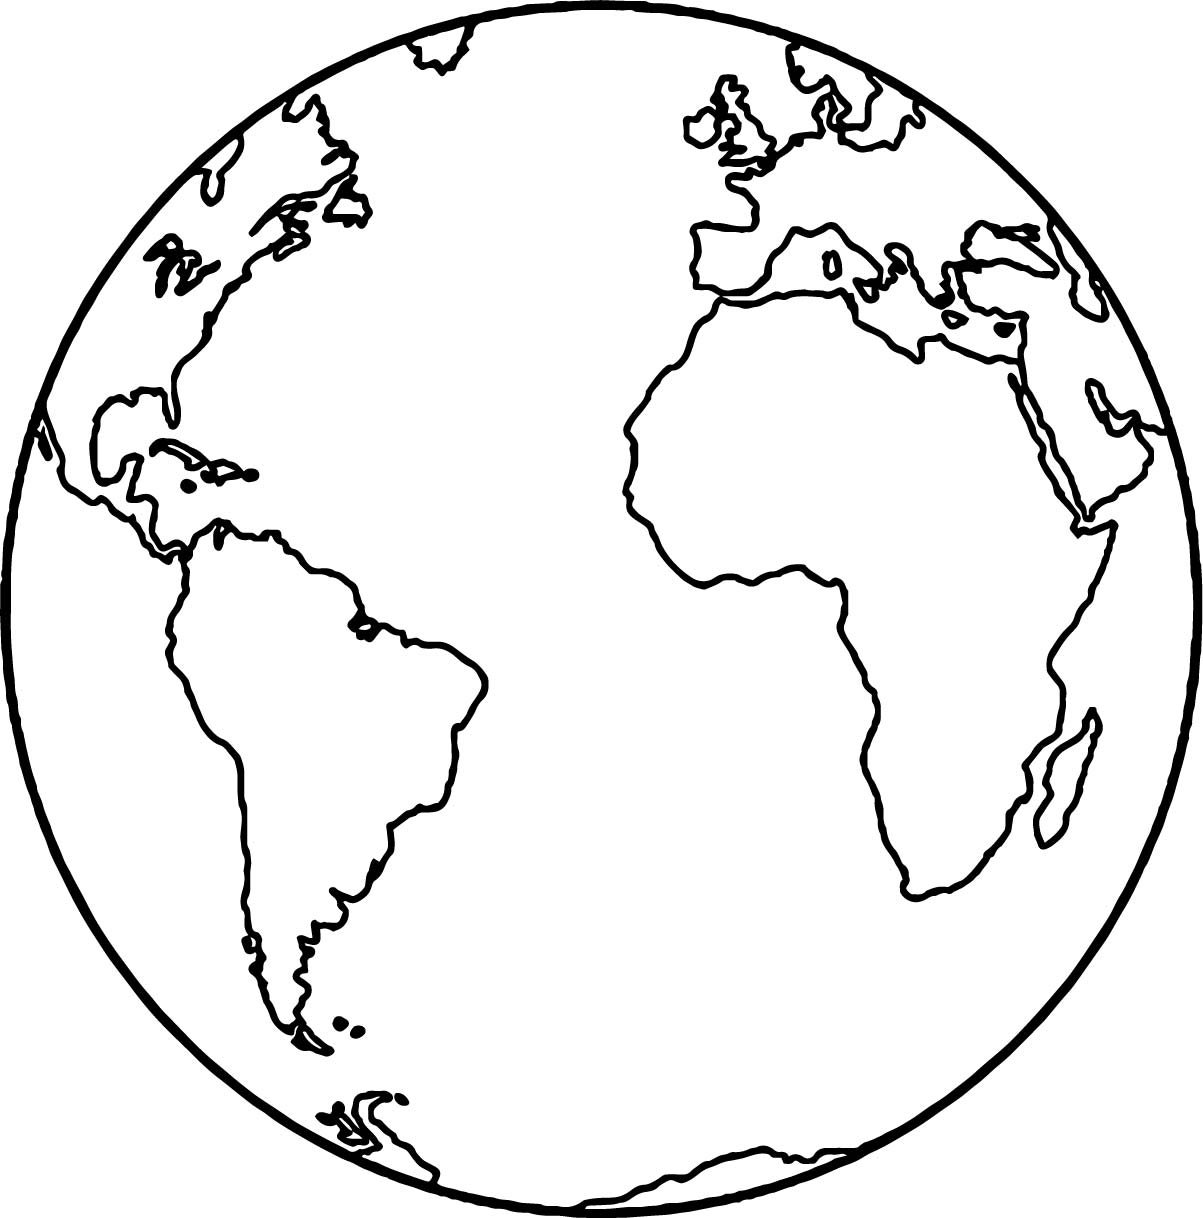 Coloring Pages Earth : Earth globe coloring page wecoloringpage